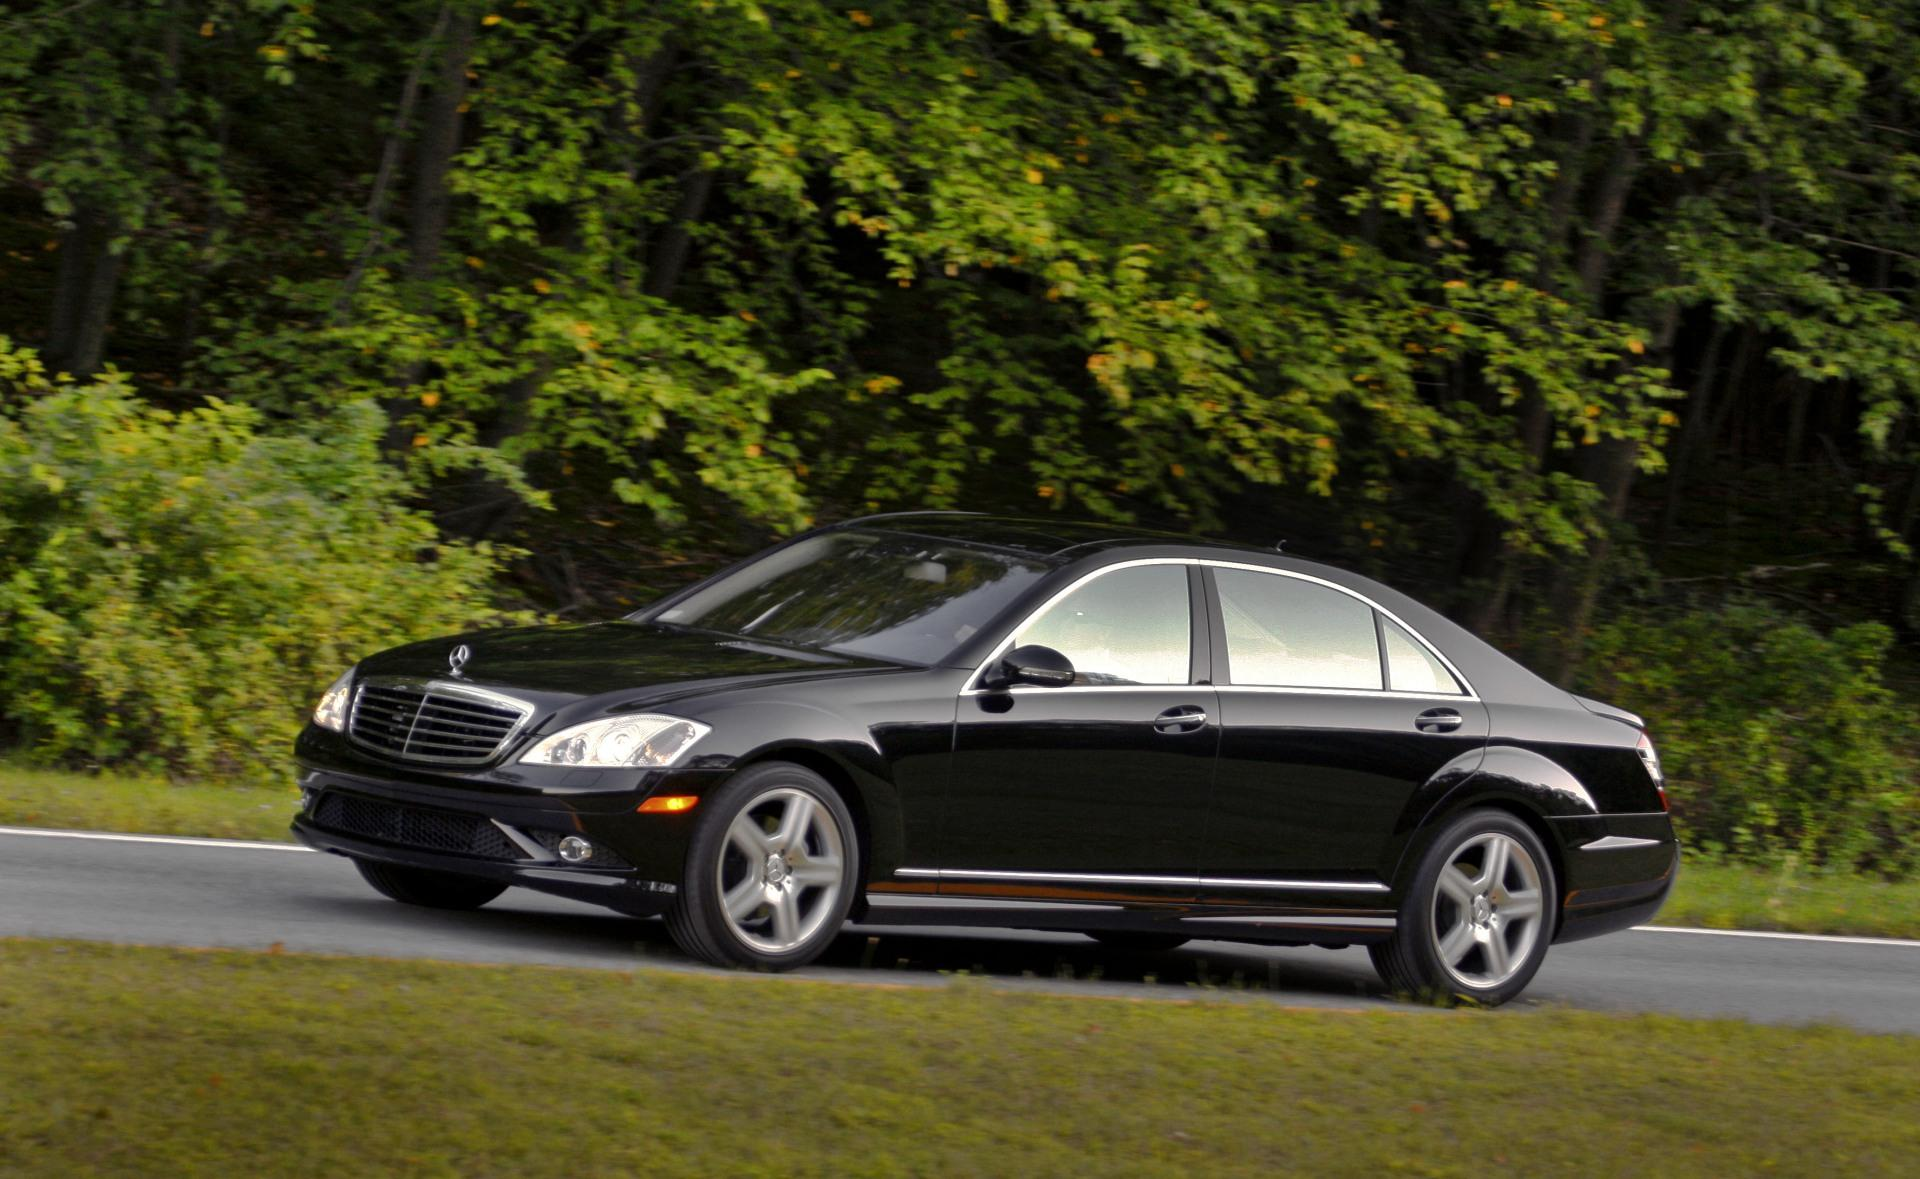 2009 mercedes benz s class news and information for 2009 mercedes benz s550 amg